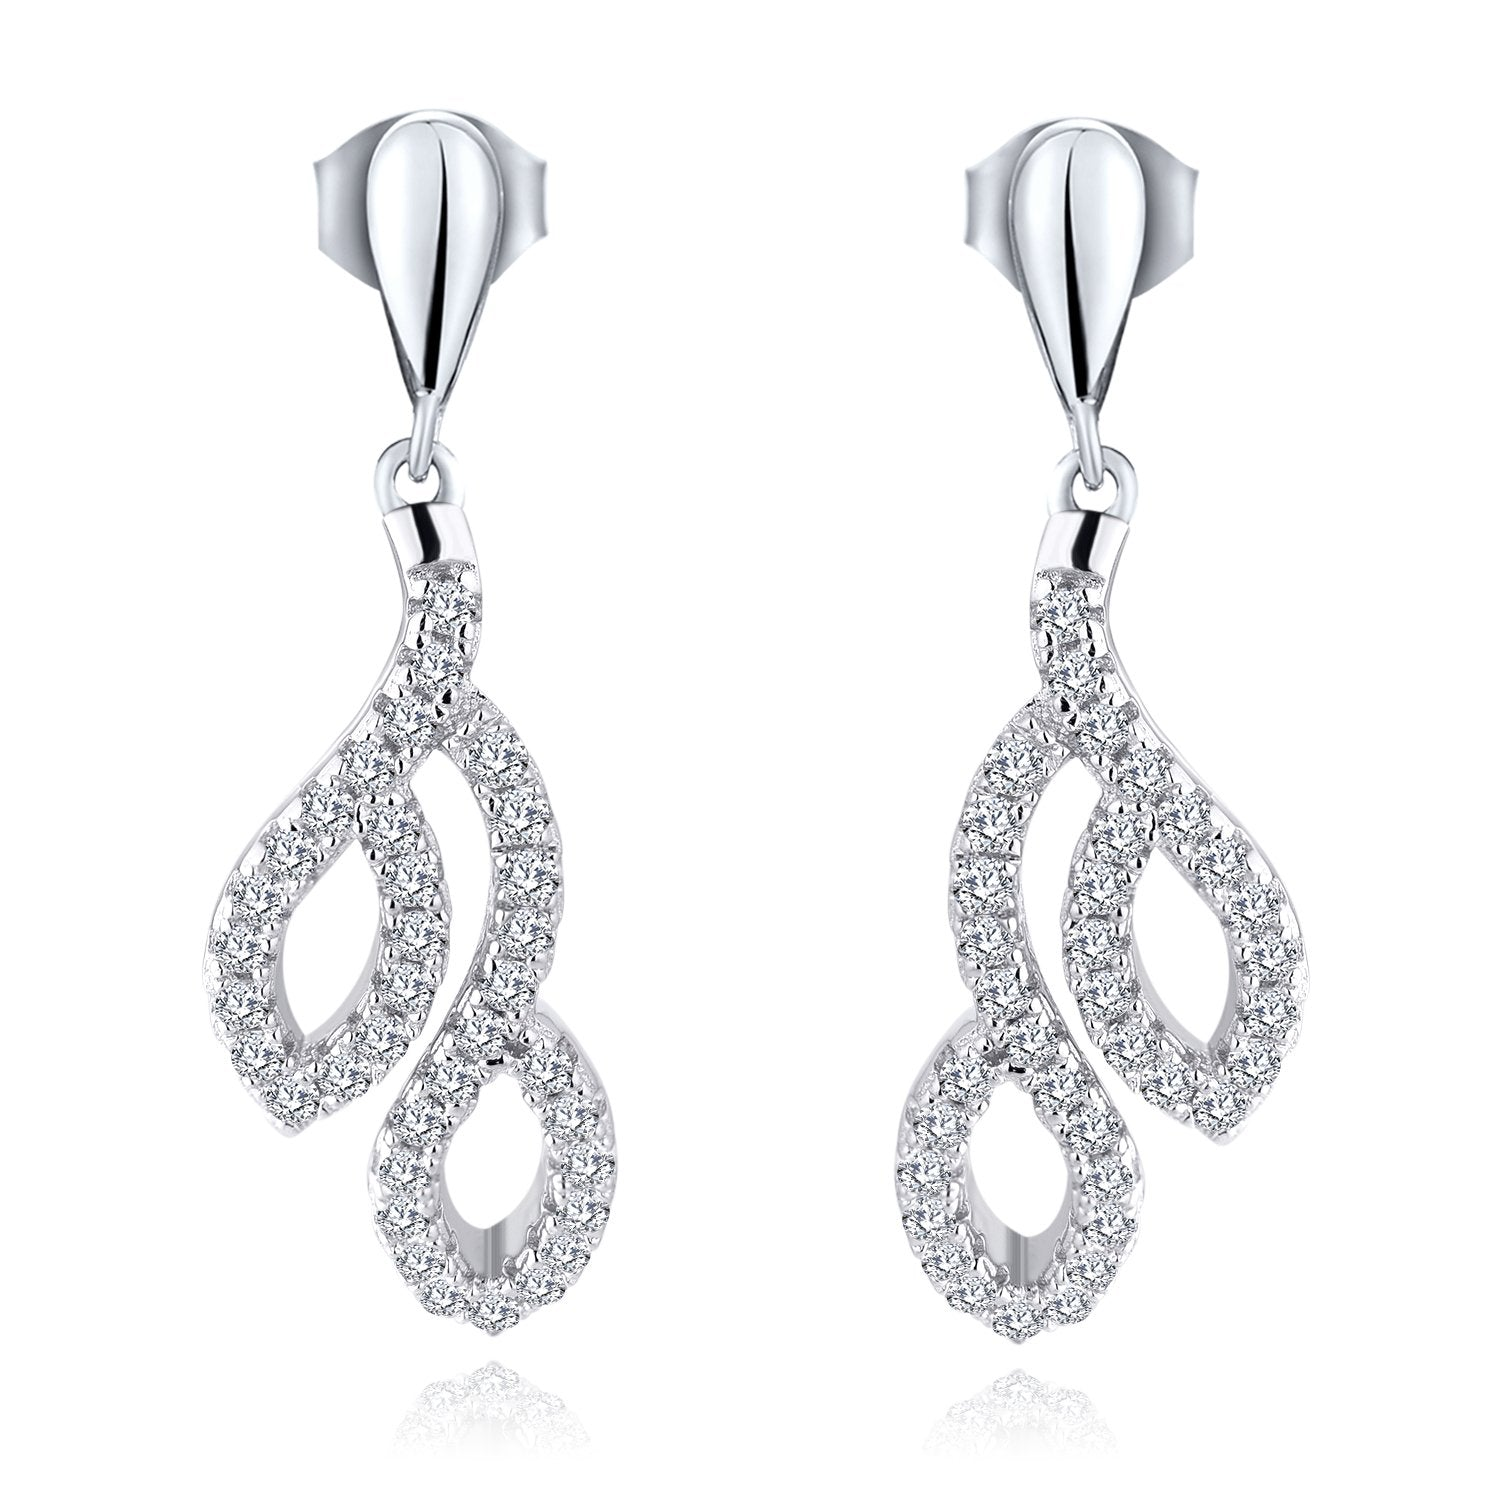 Farjary Women's Classic 9K White Gold Leaves Drop Earrings with 0.51cttw Round Brilliant Diamond